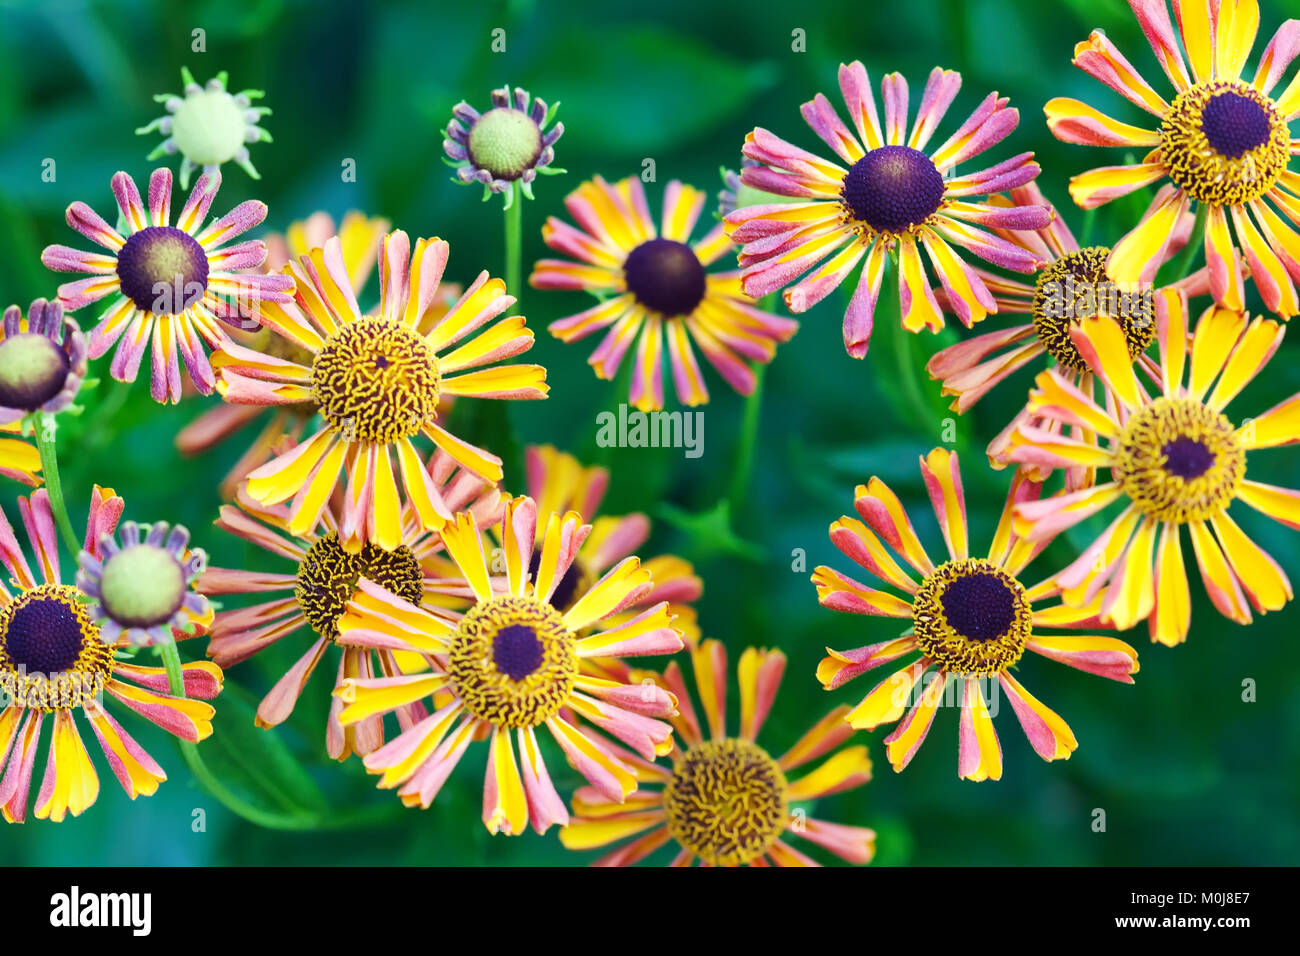 Beautiful orange red yellow petal flowers in the garden. Field of autumn daisies flowers. green soft background. - Stock Image